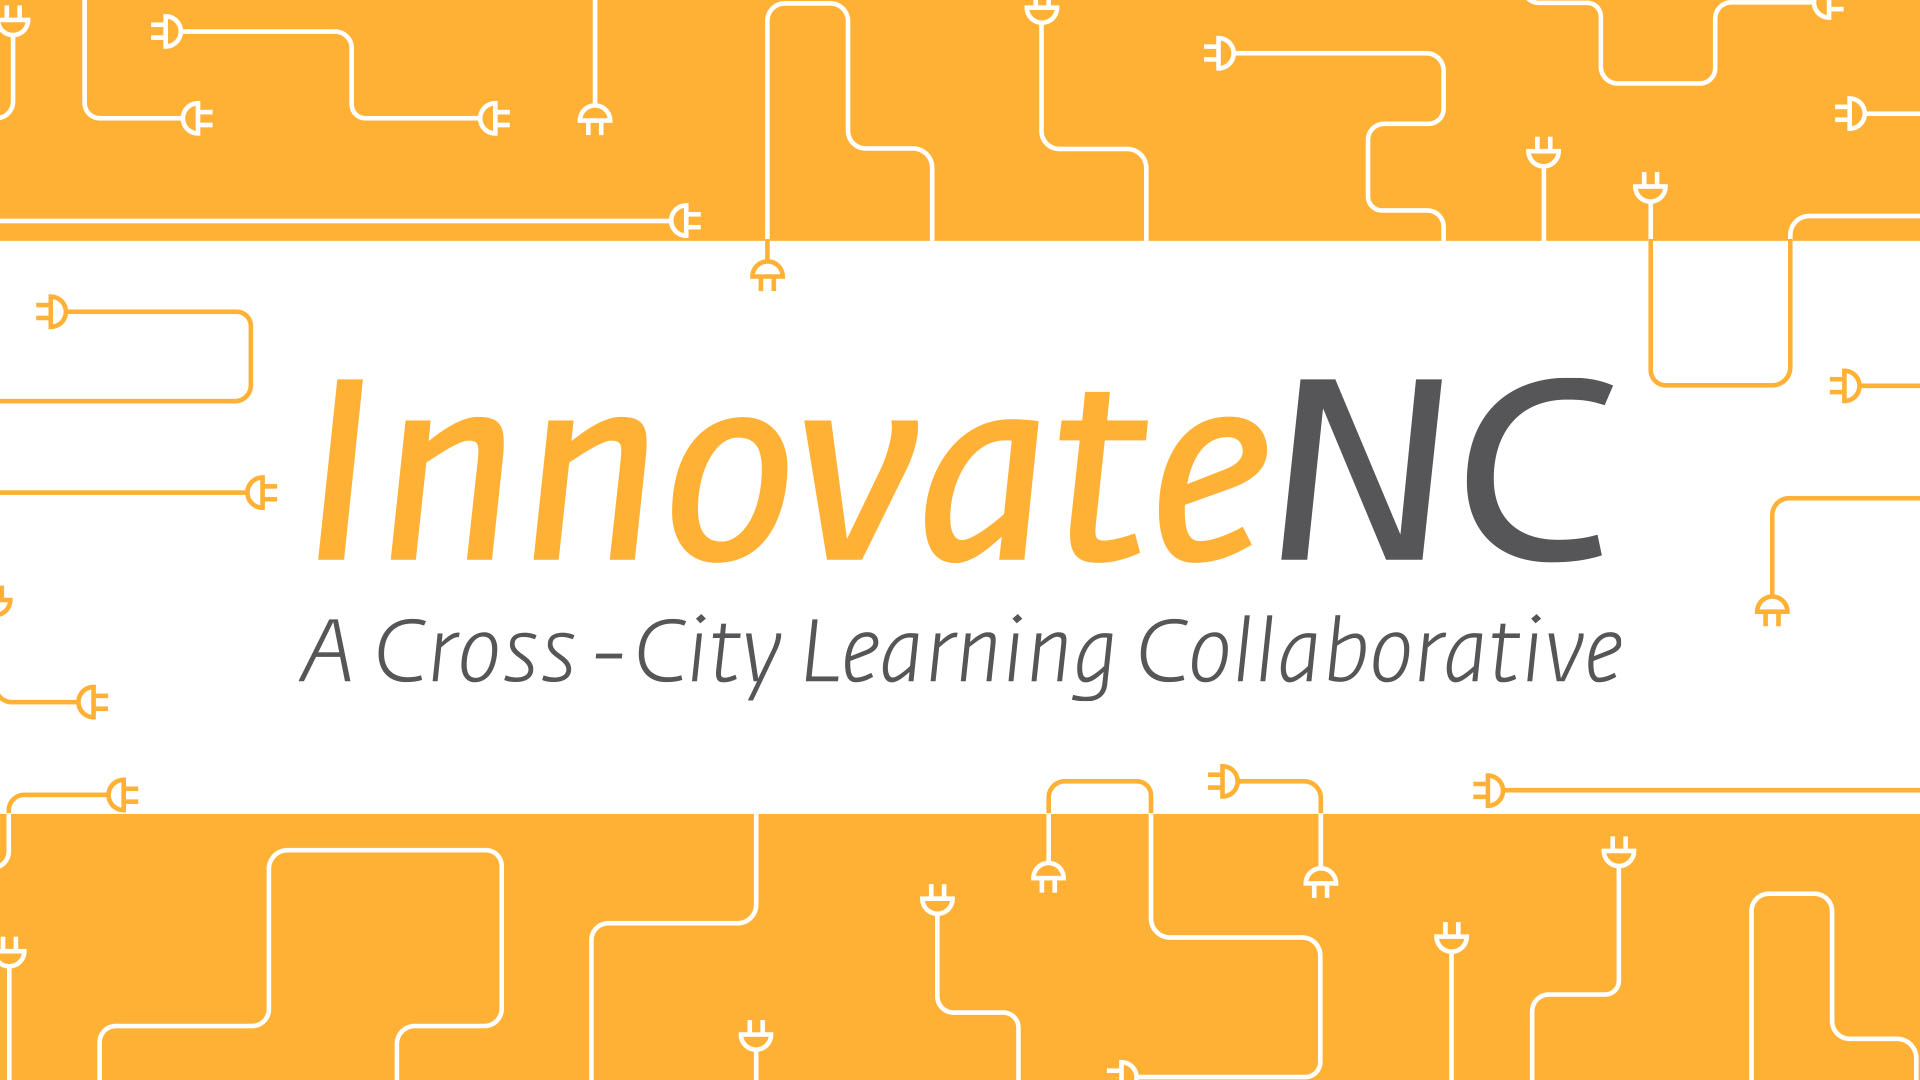 InnovateNC Accross-City Learning Collaborative